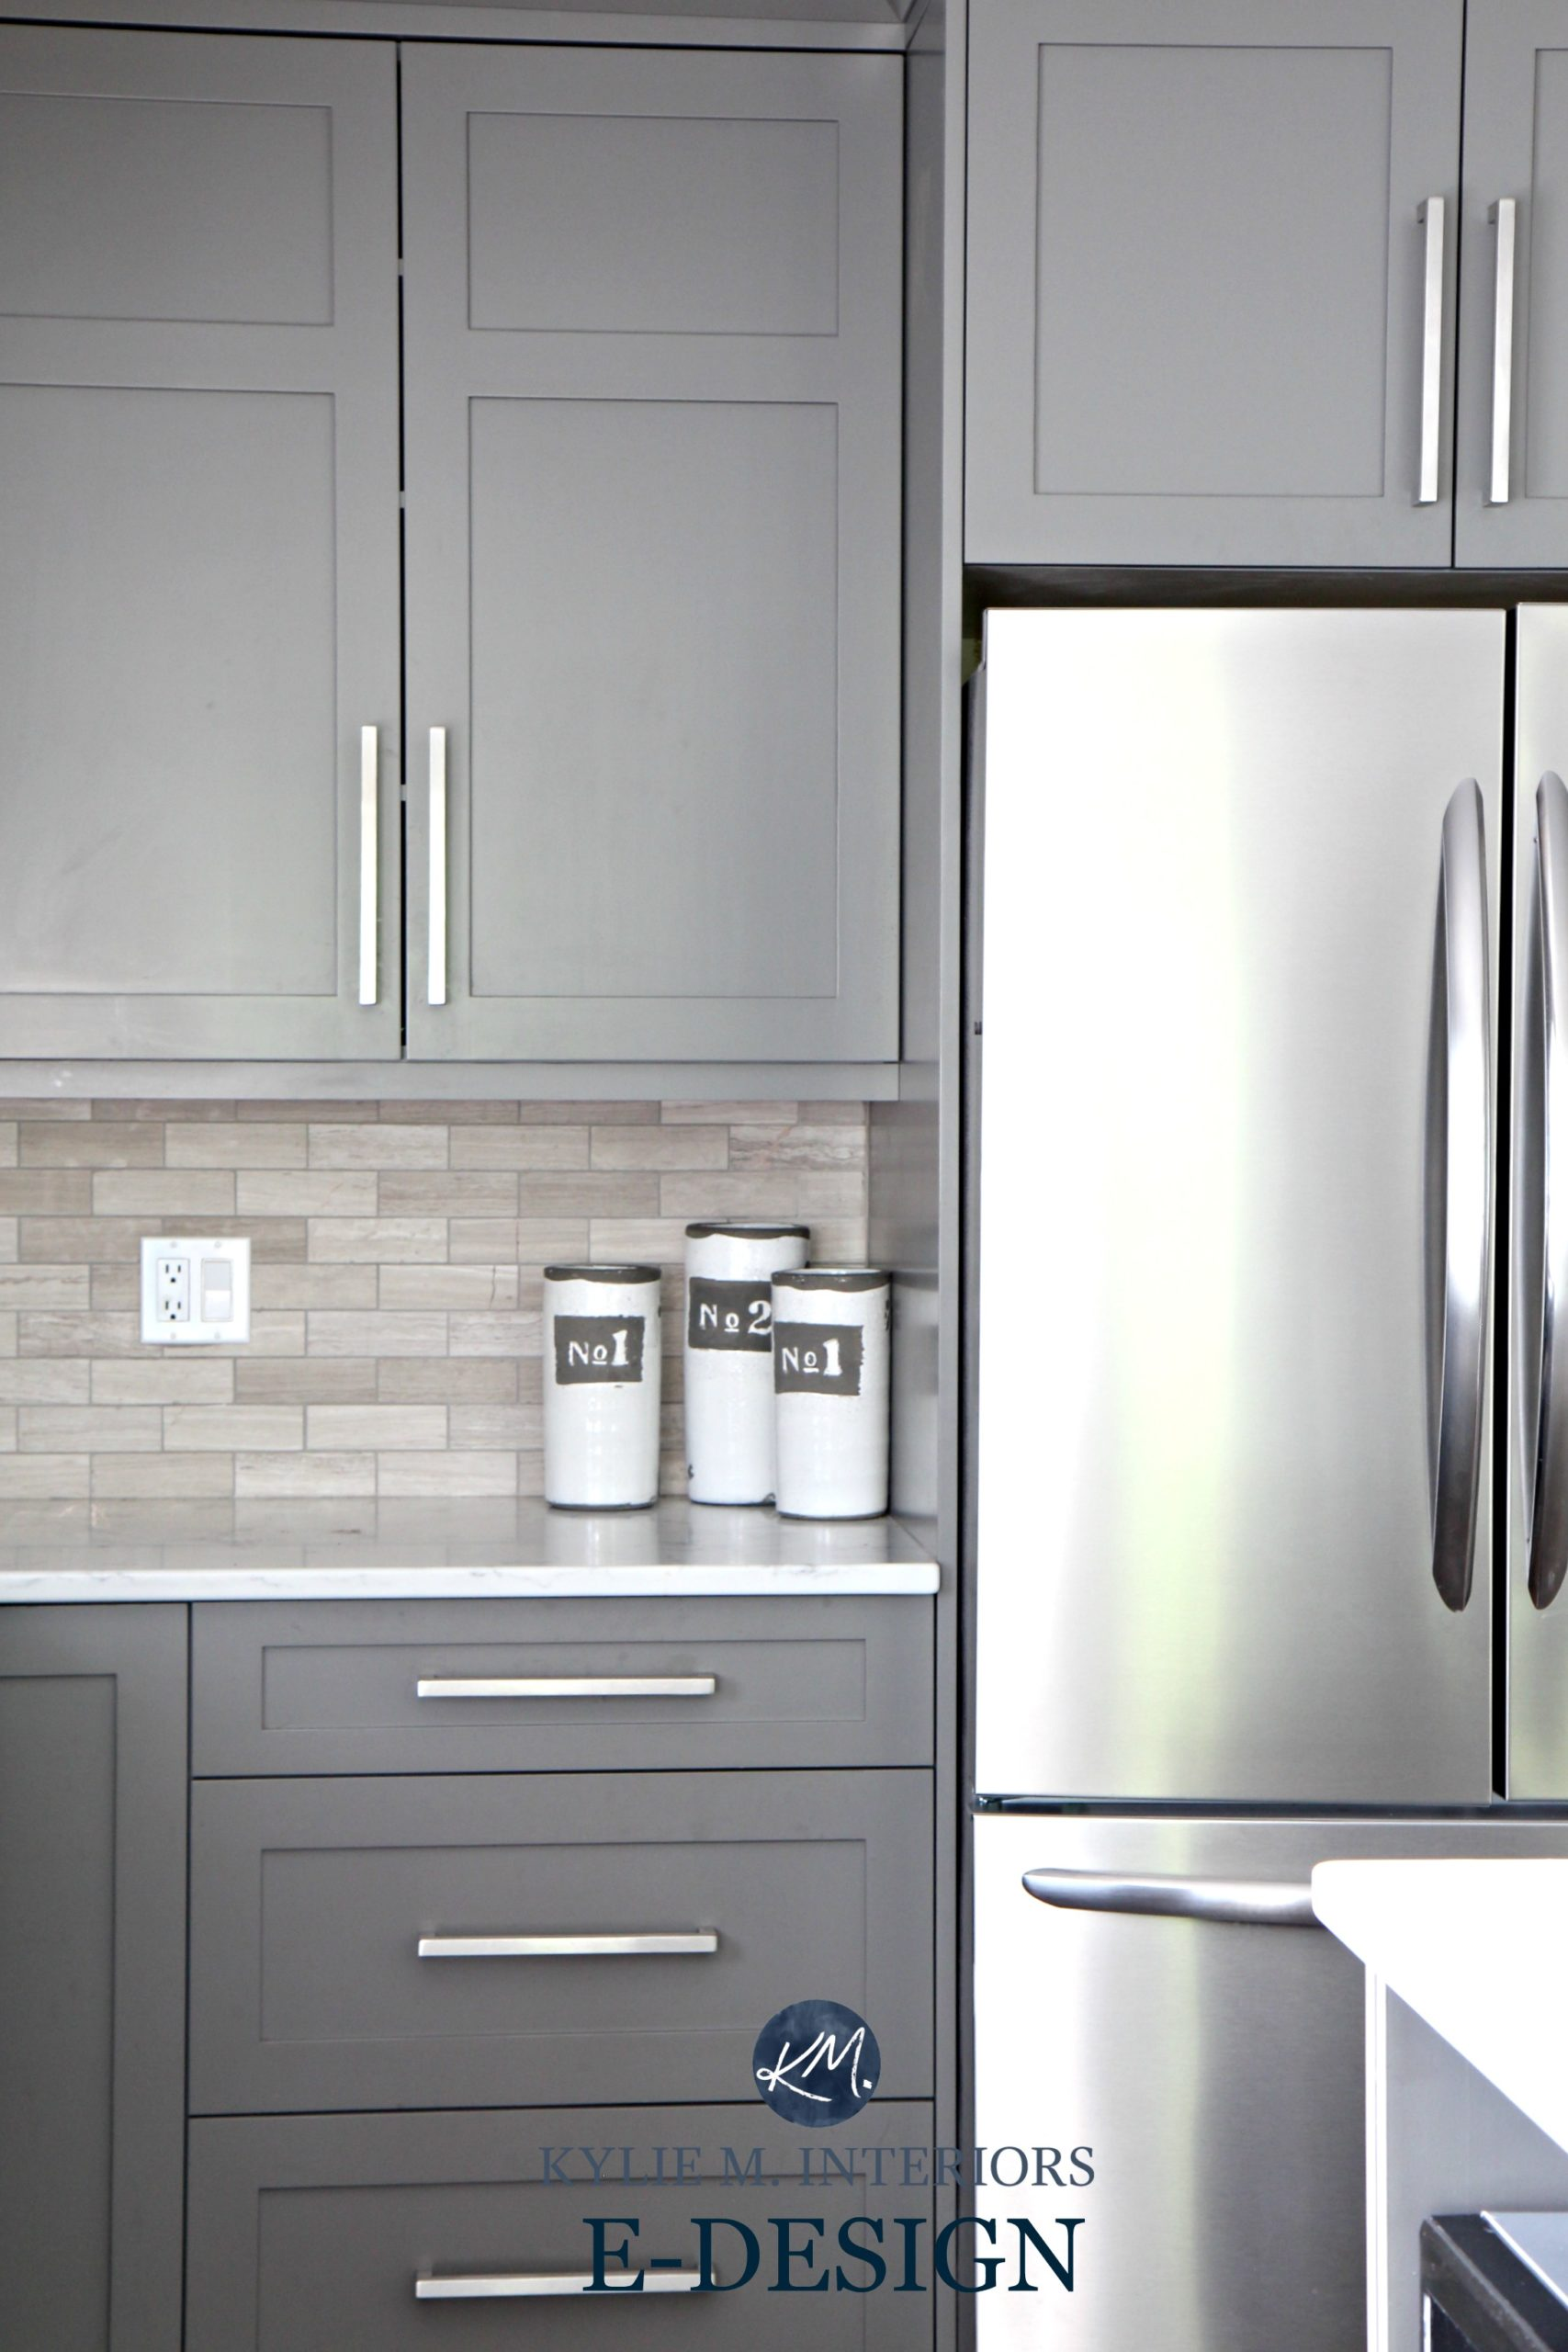 Benjamin Moore Kitchen Cabinet Colors Gray Painted Kitchen Cabinets Benjamin Moore Amherst Gray